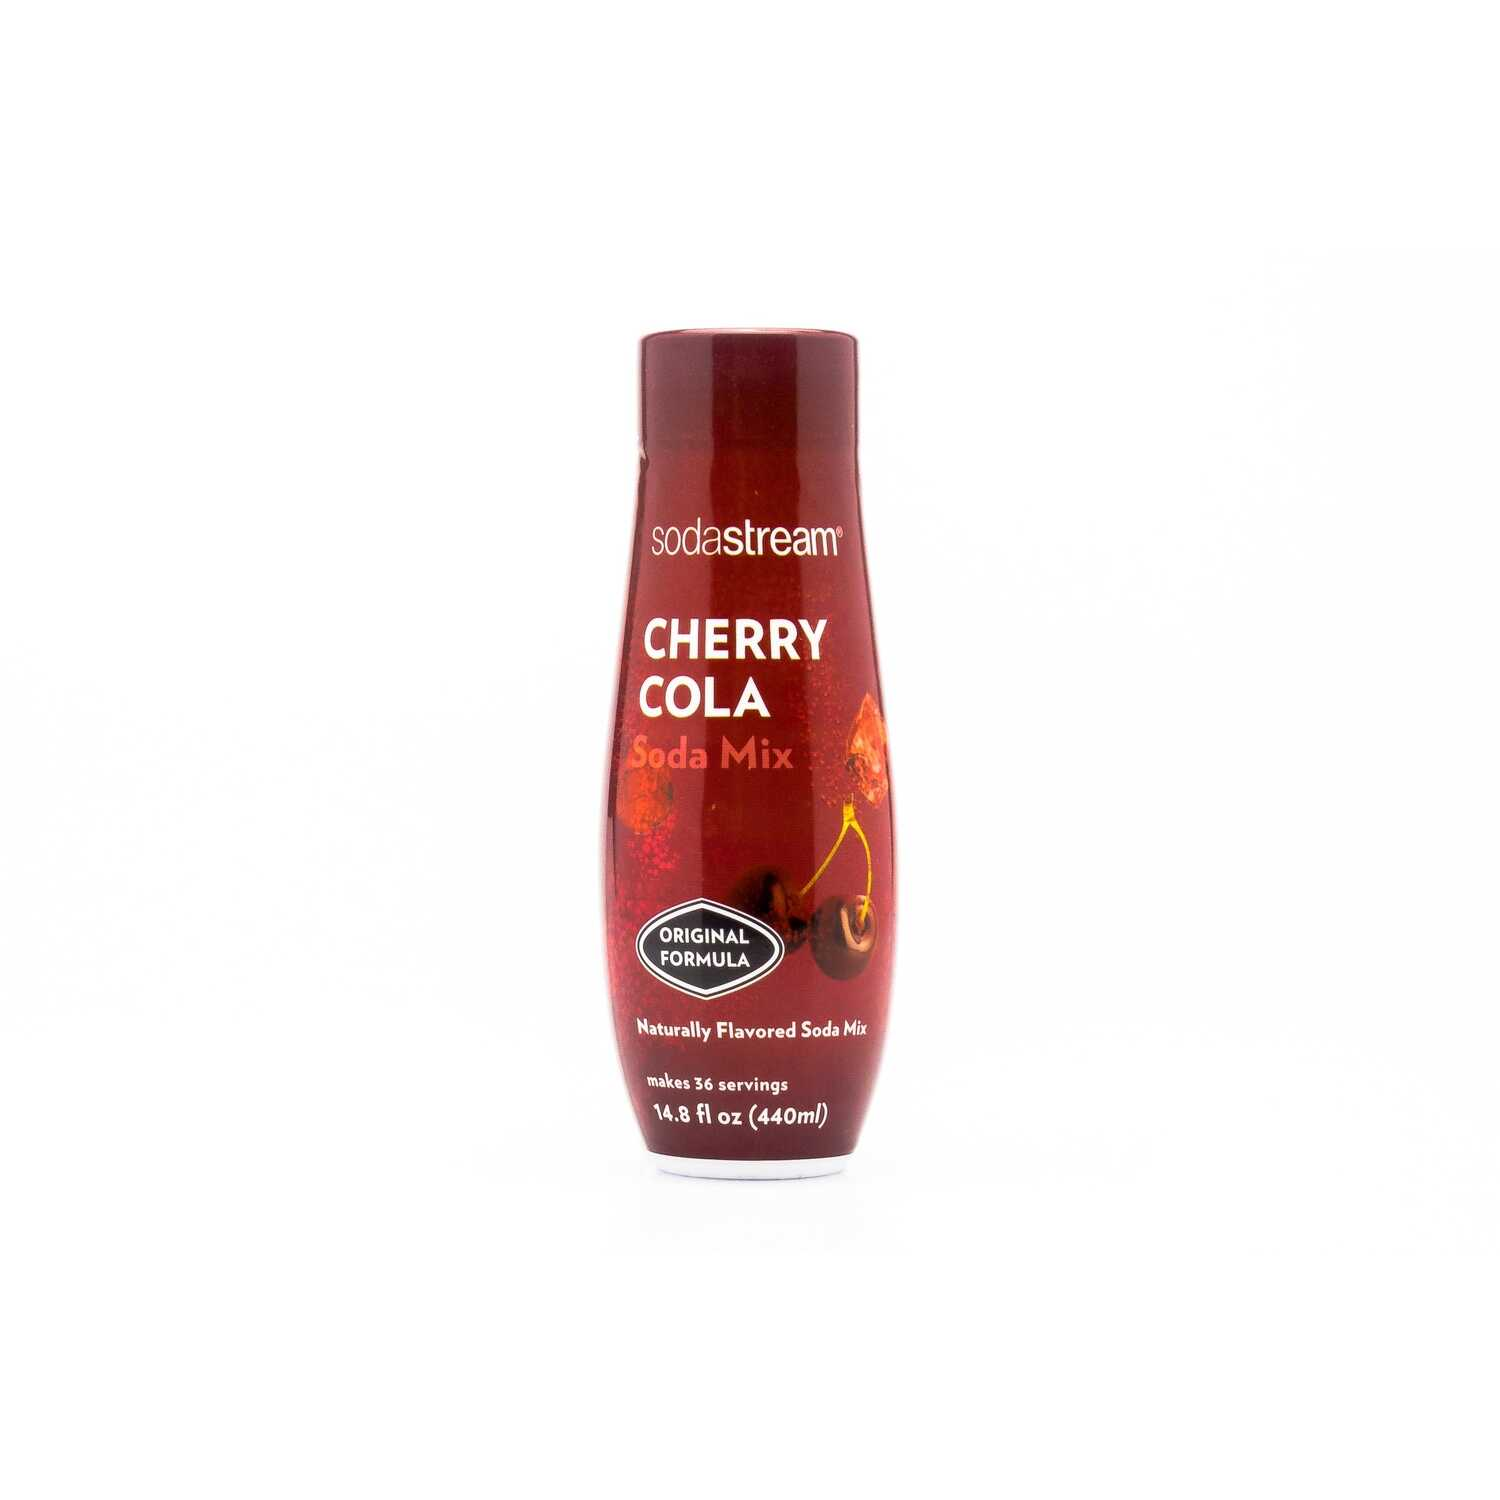 Sodastream  Cherry Cola  Soda Mix  14.8 oz. 1 pk